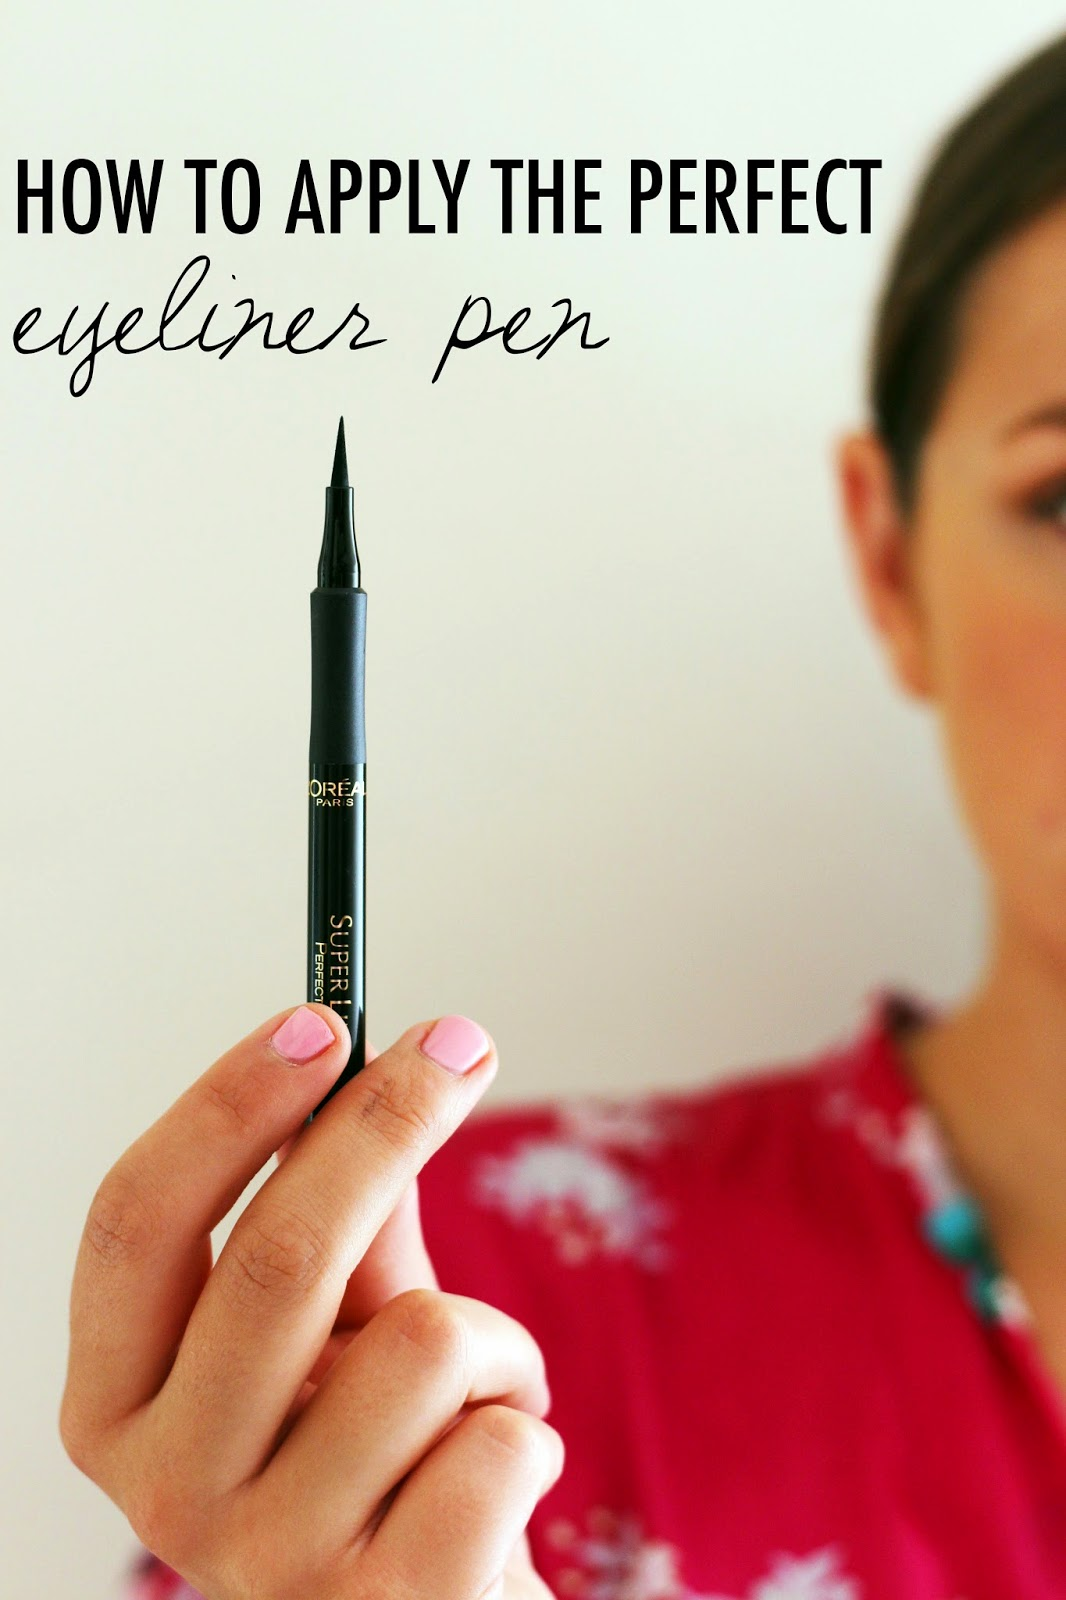 How To Apply The Perfect Eyeliner Pen